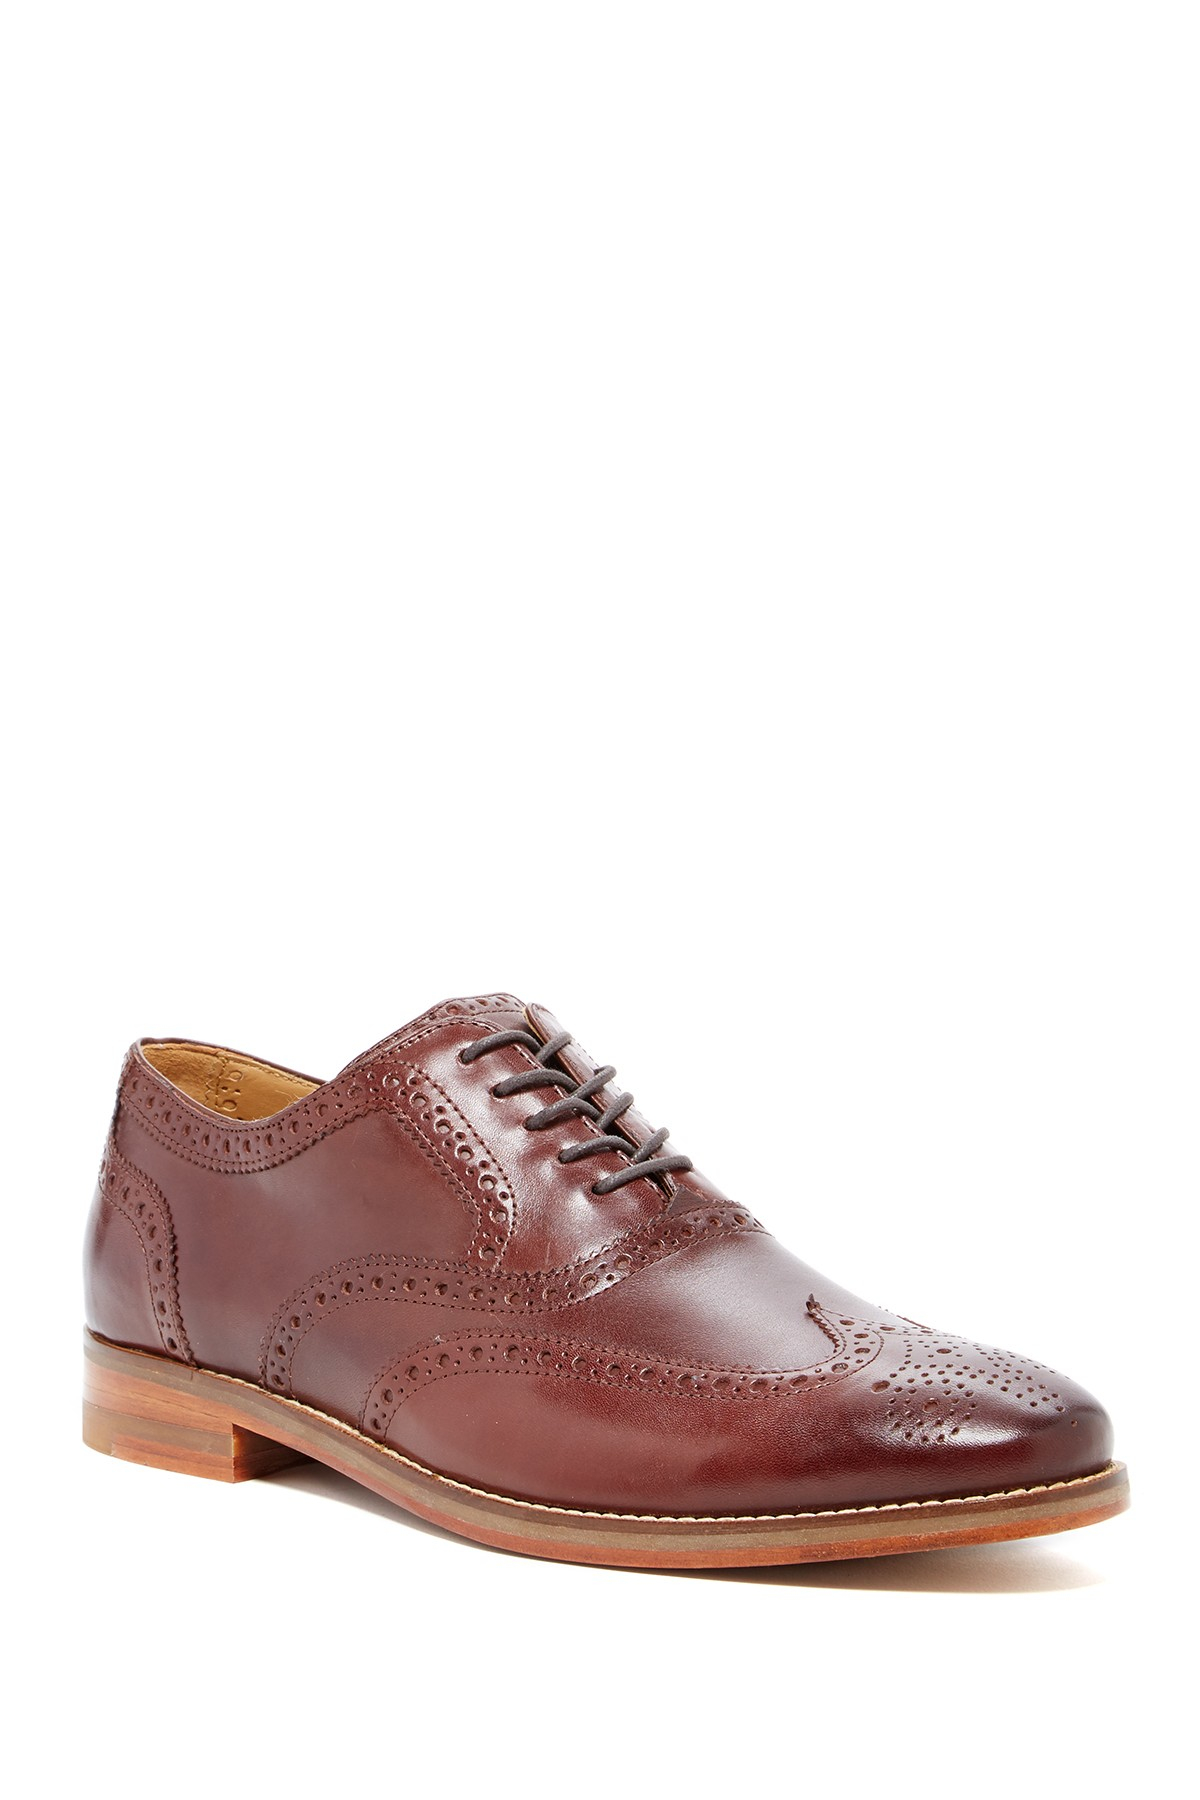 Cole Haan Brown Wingtip Shoes